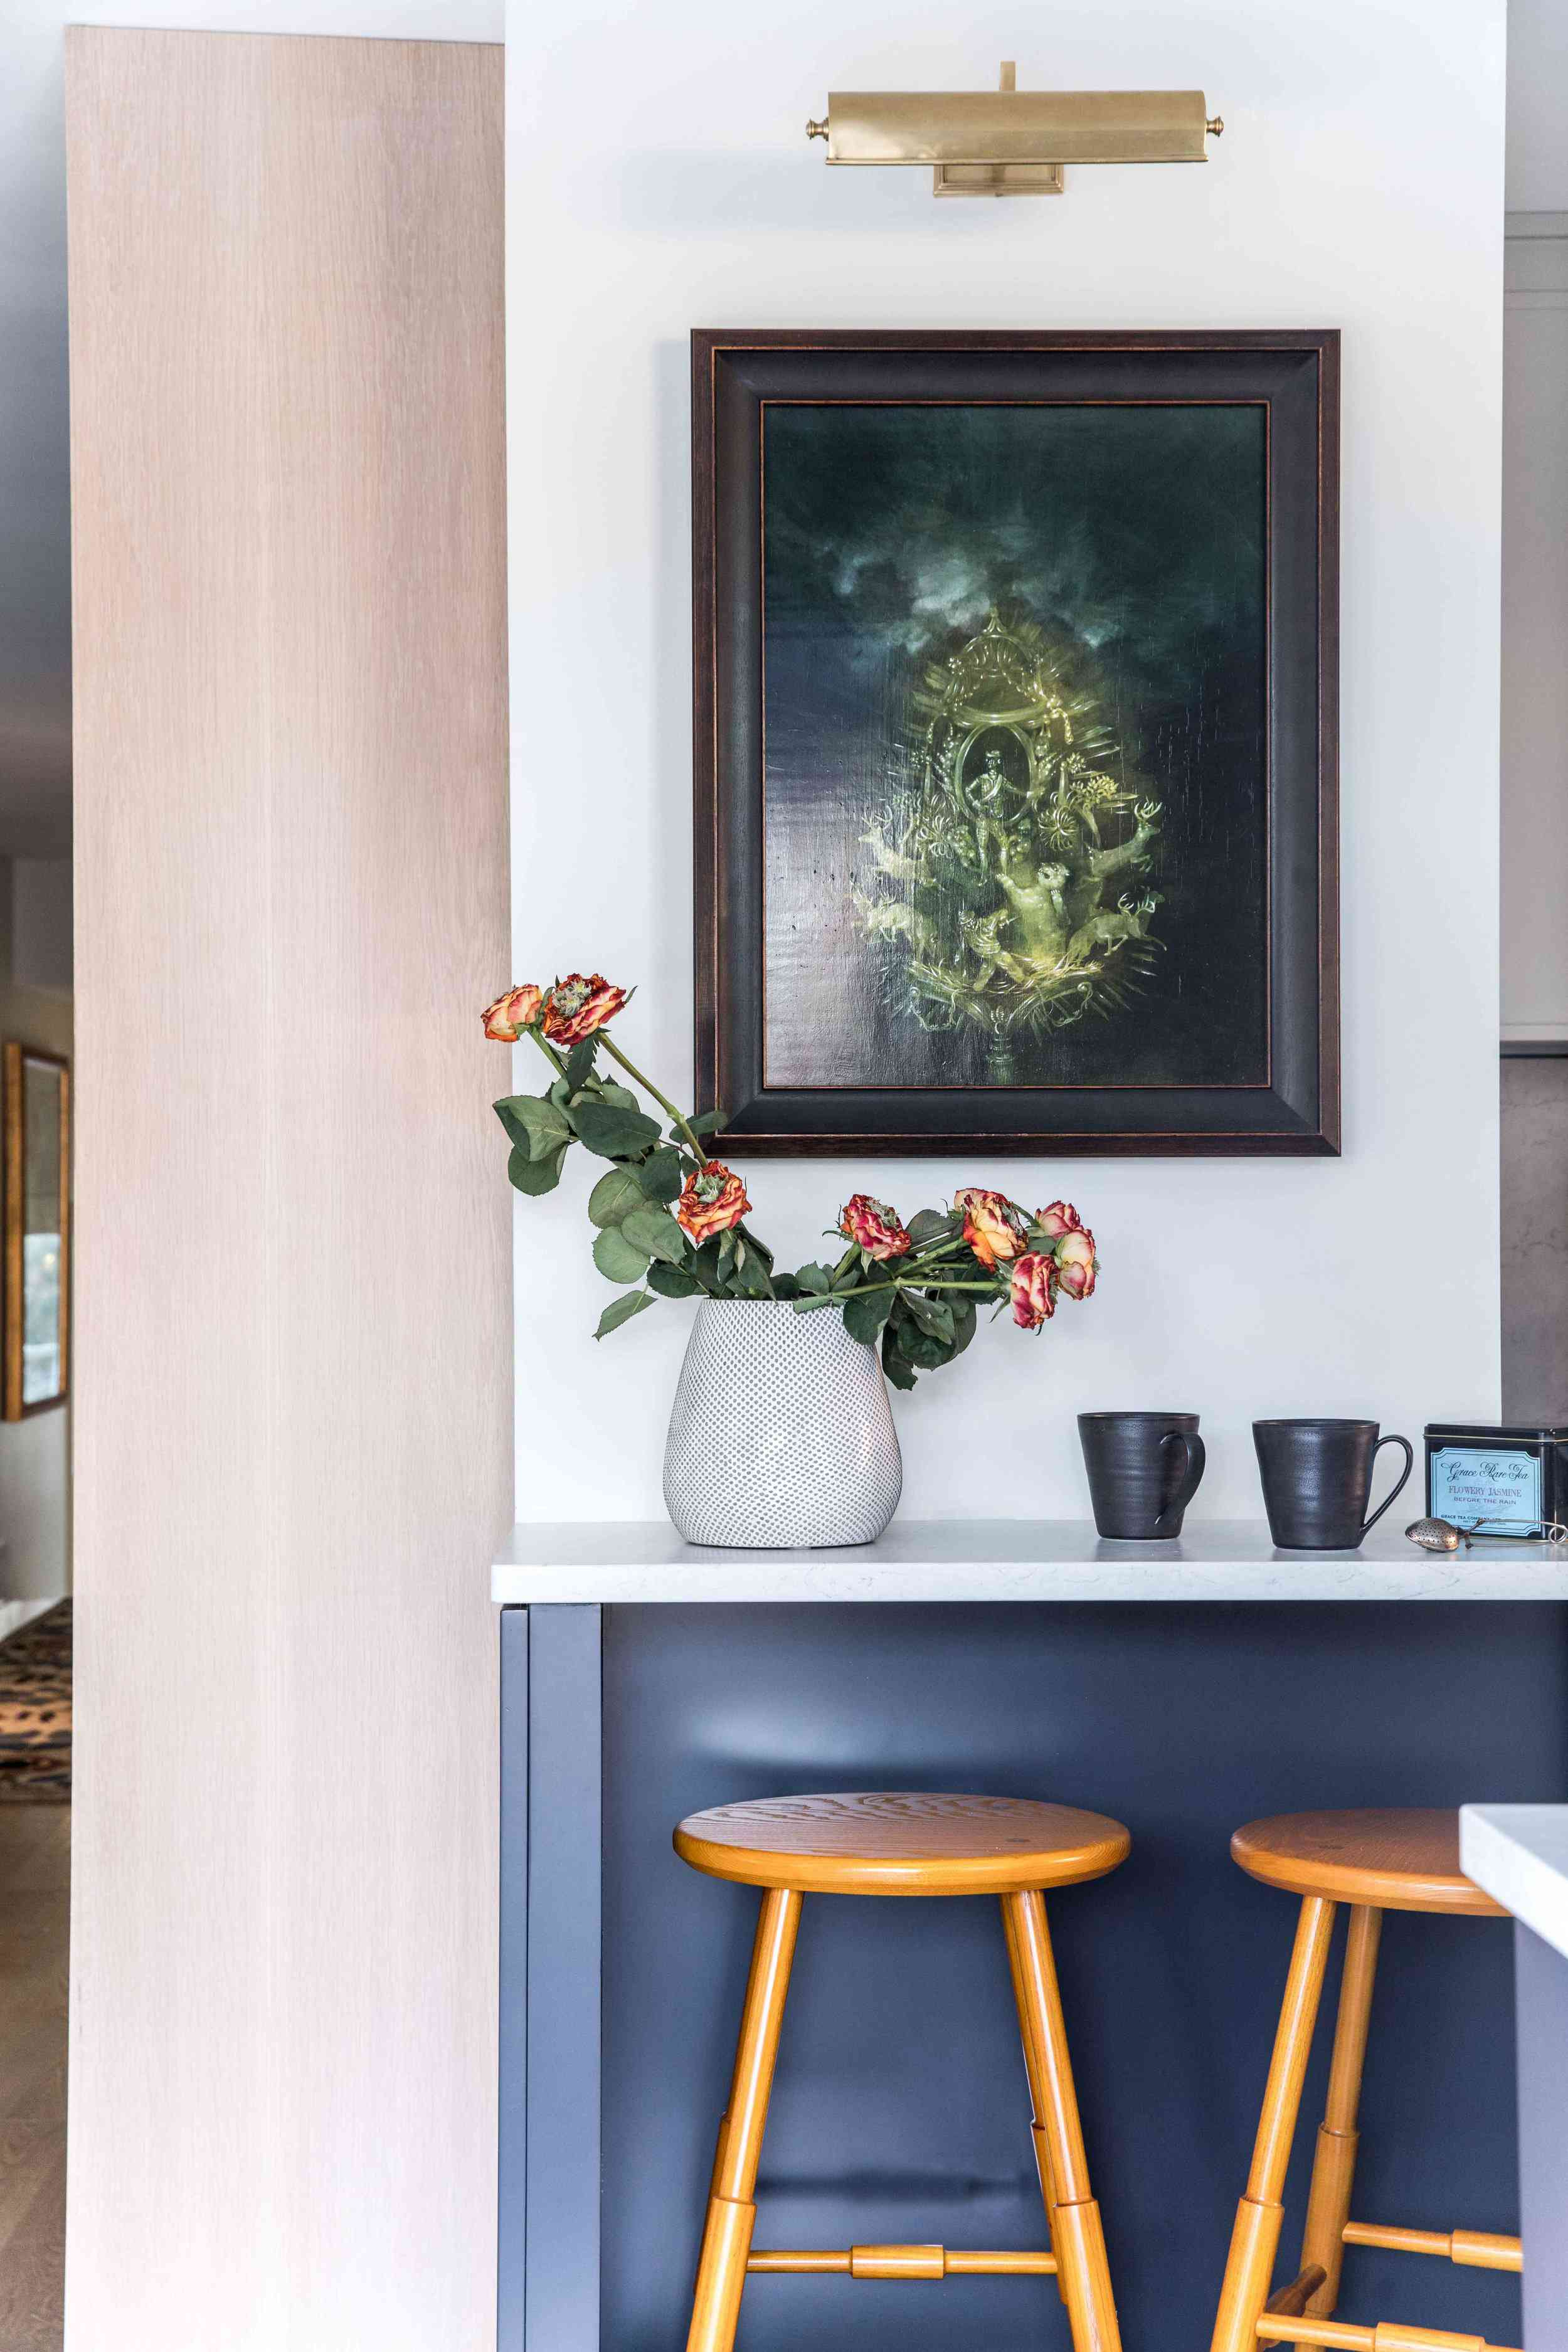 Breakfast nook squeezed into kitchen counter